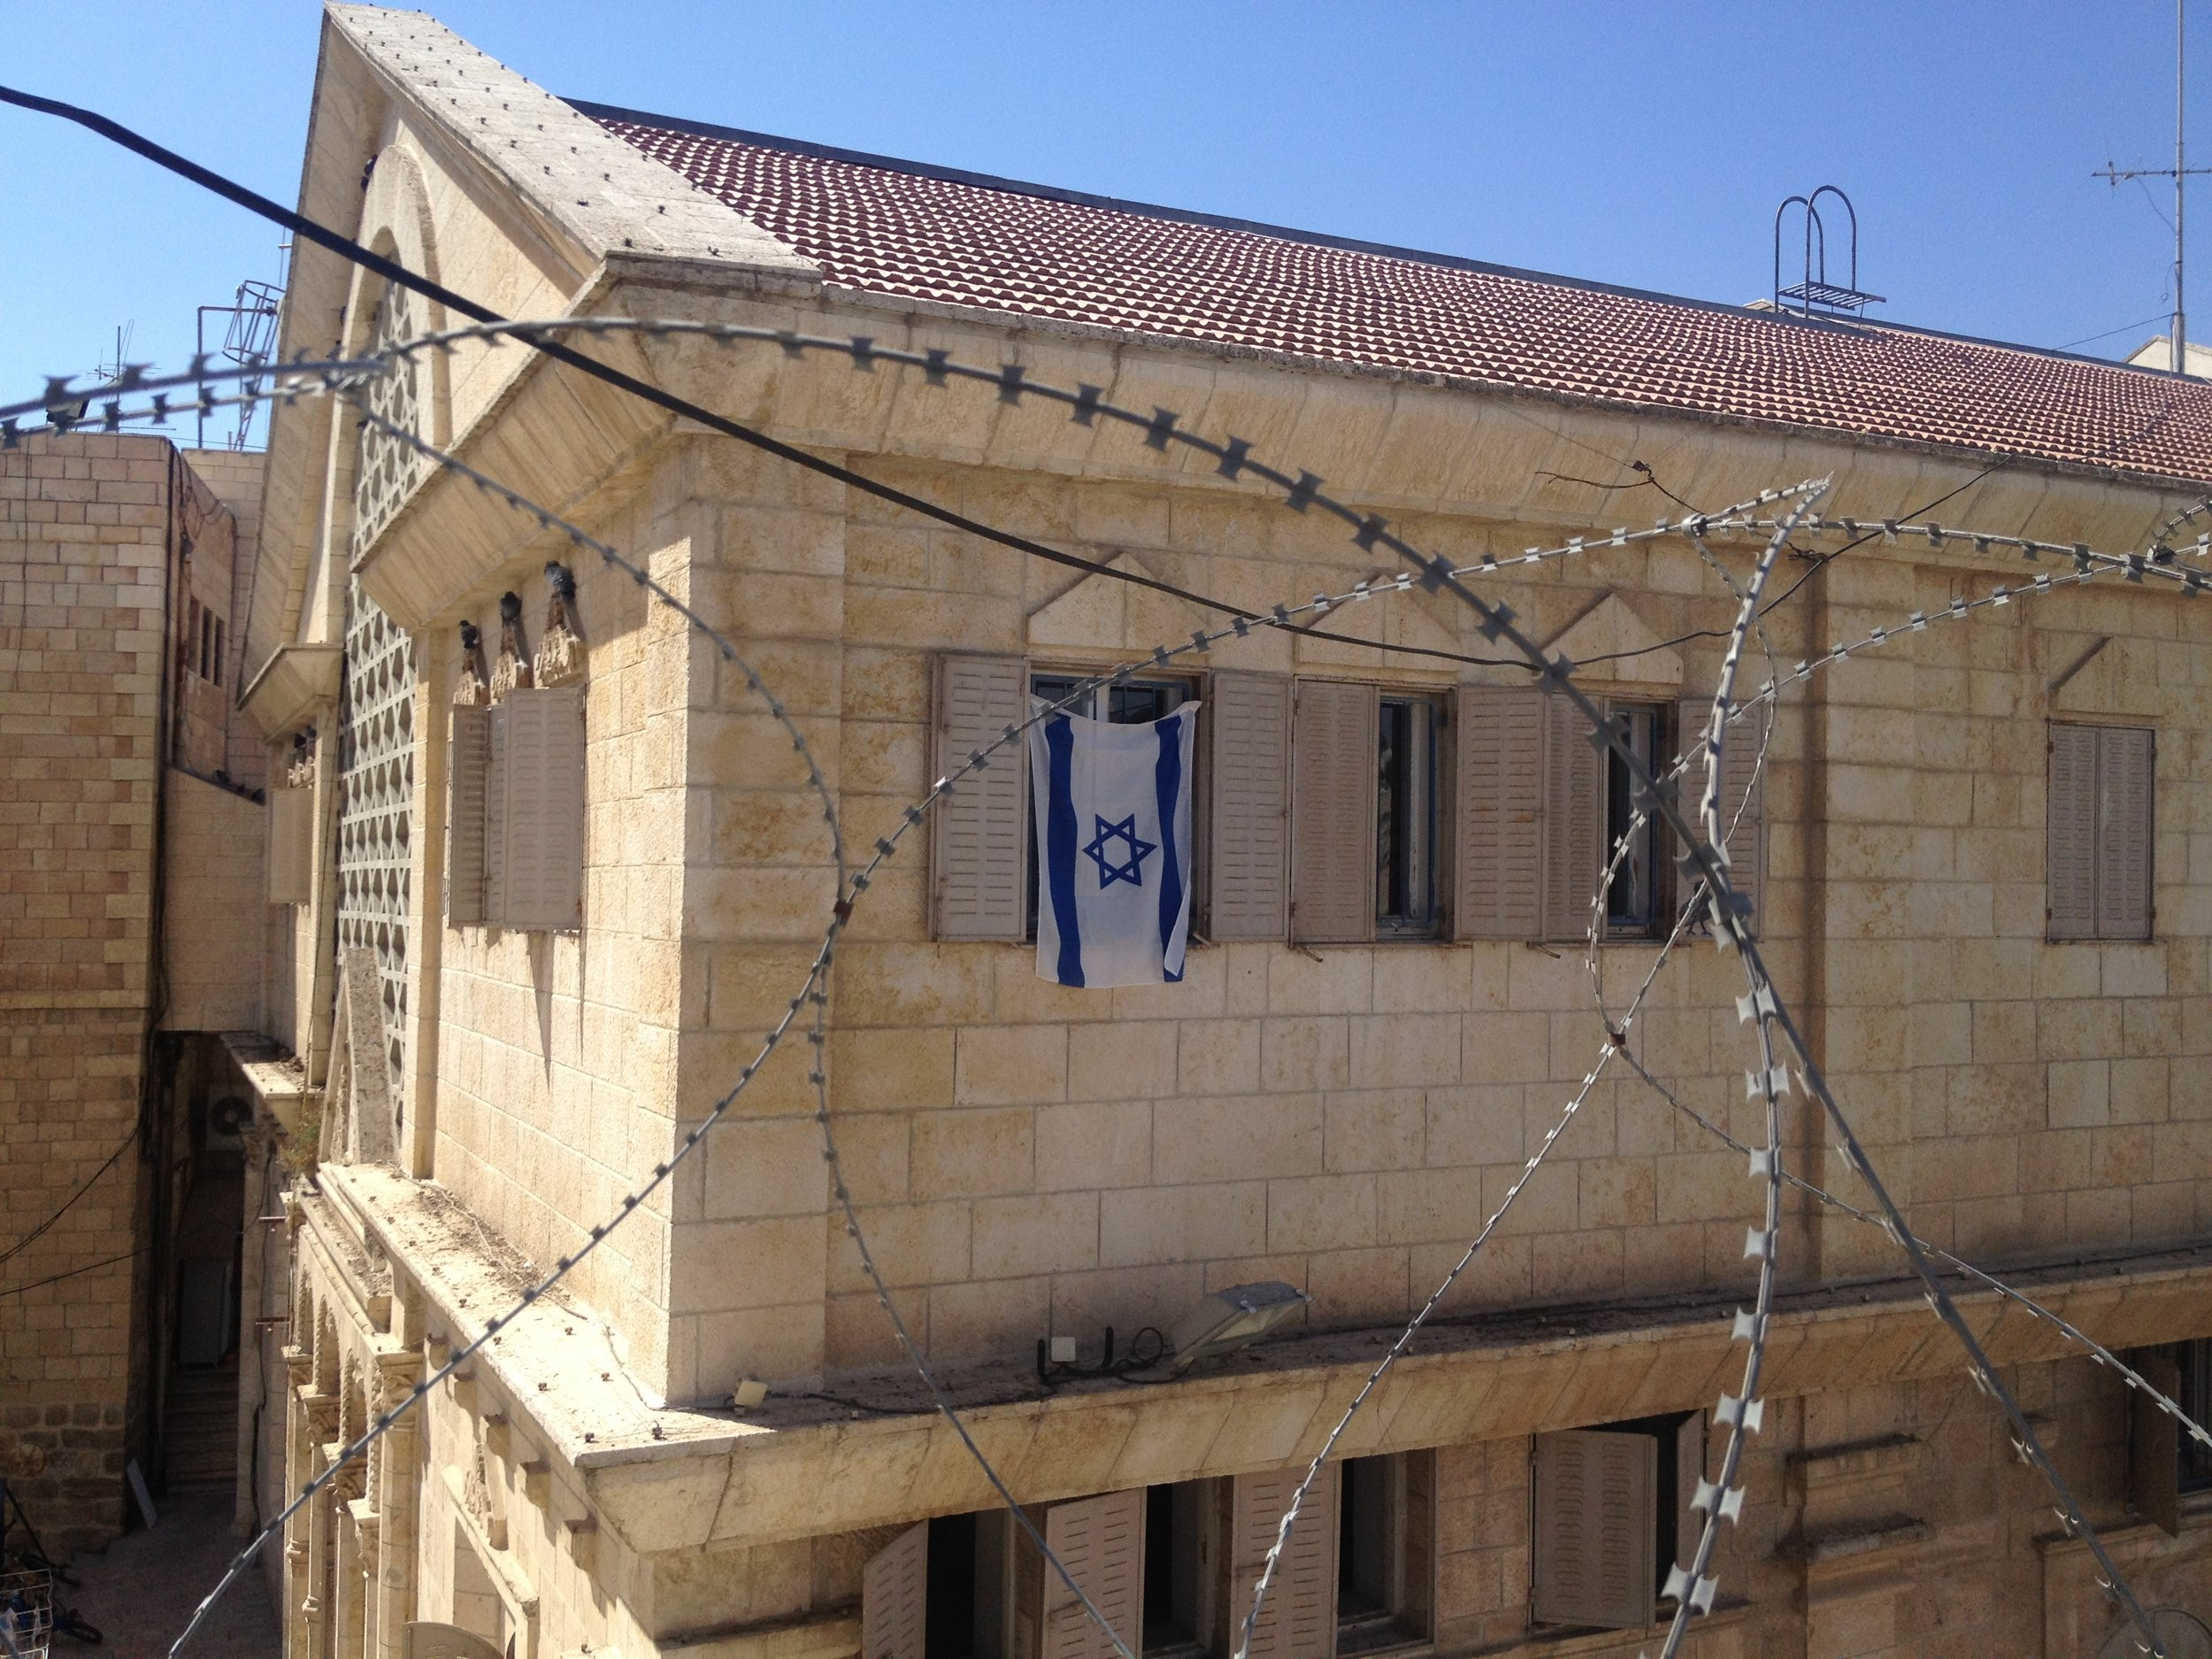 Hebron, West Bank. June, 2011.